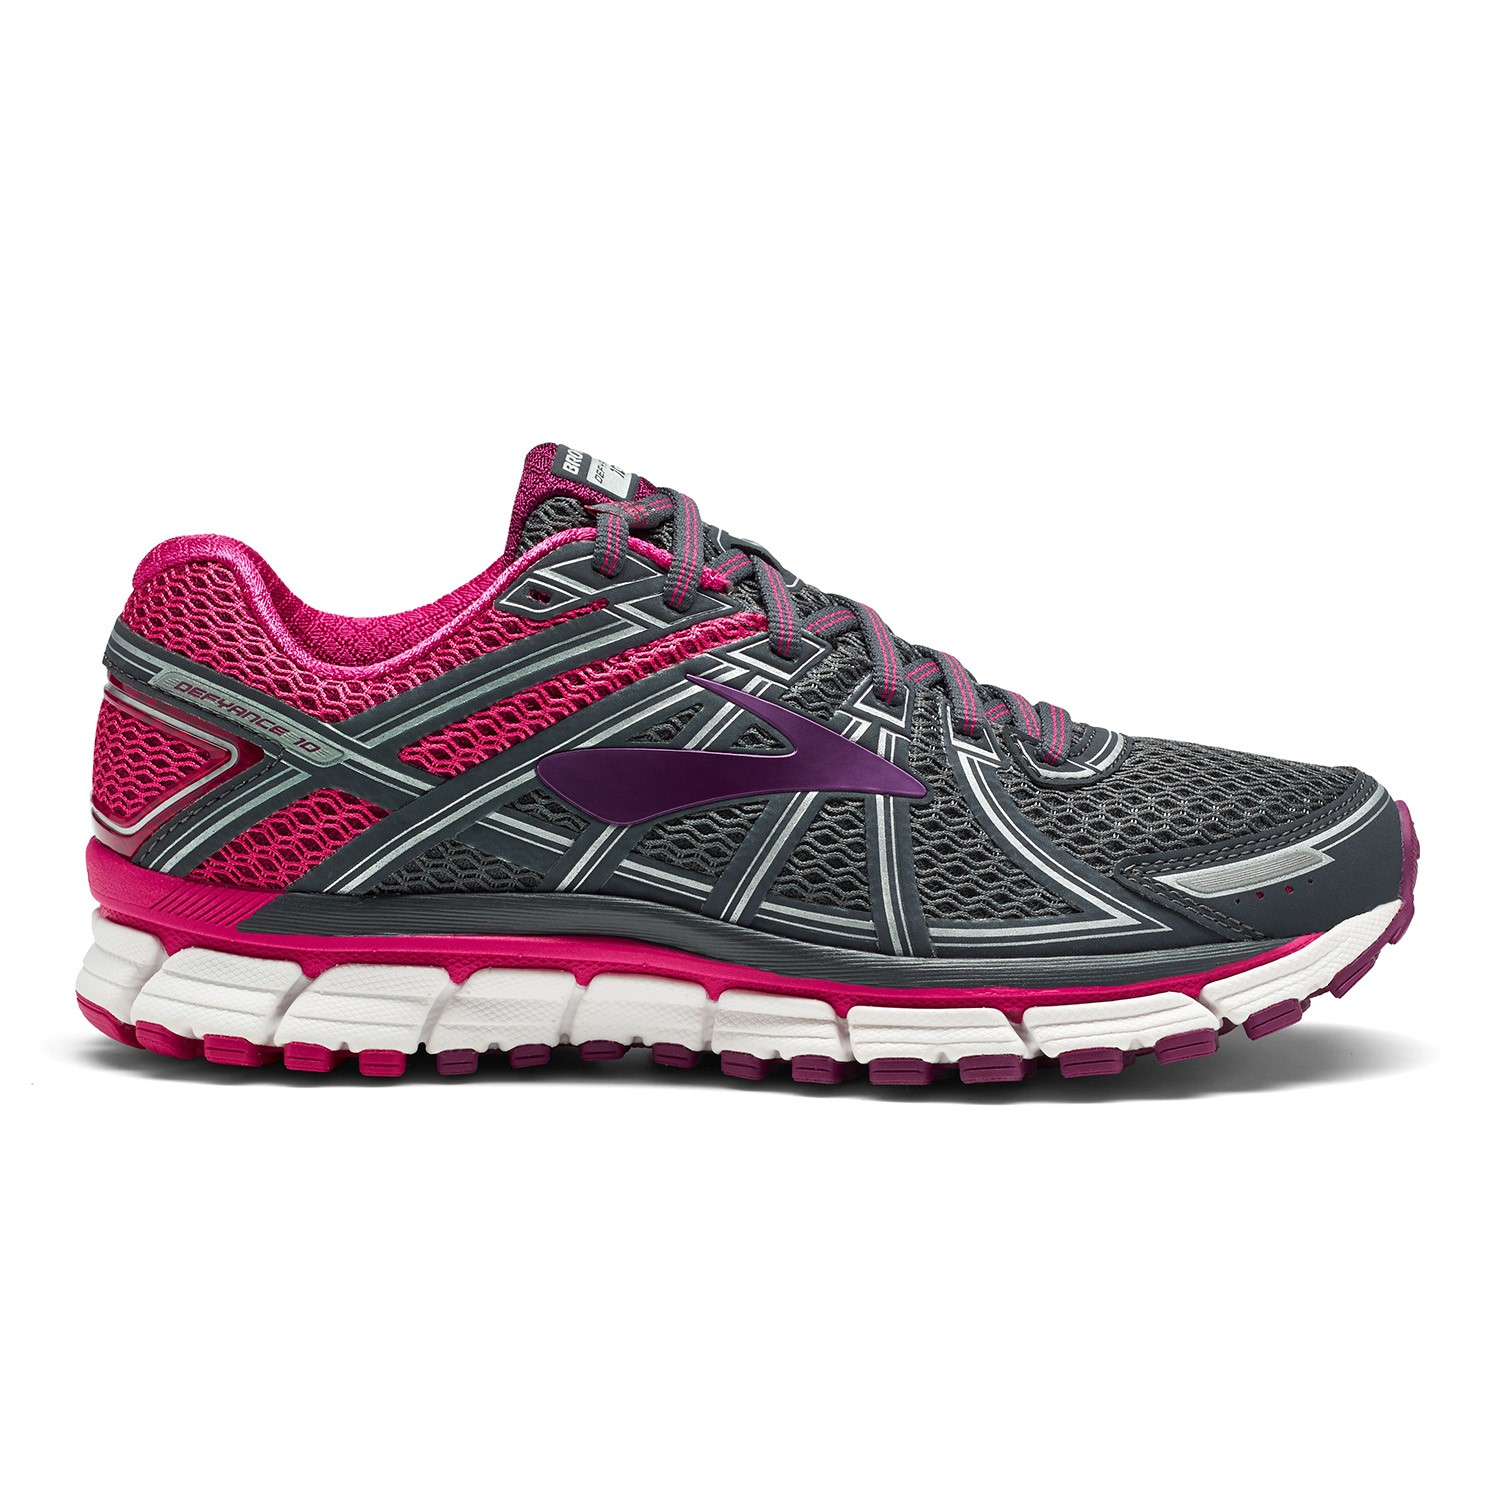 2d80aac7506c8 Brooks Defyance 10 - Womens Running Shoes - Ebony Pink Plum